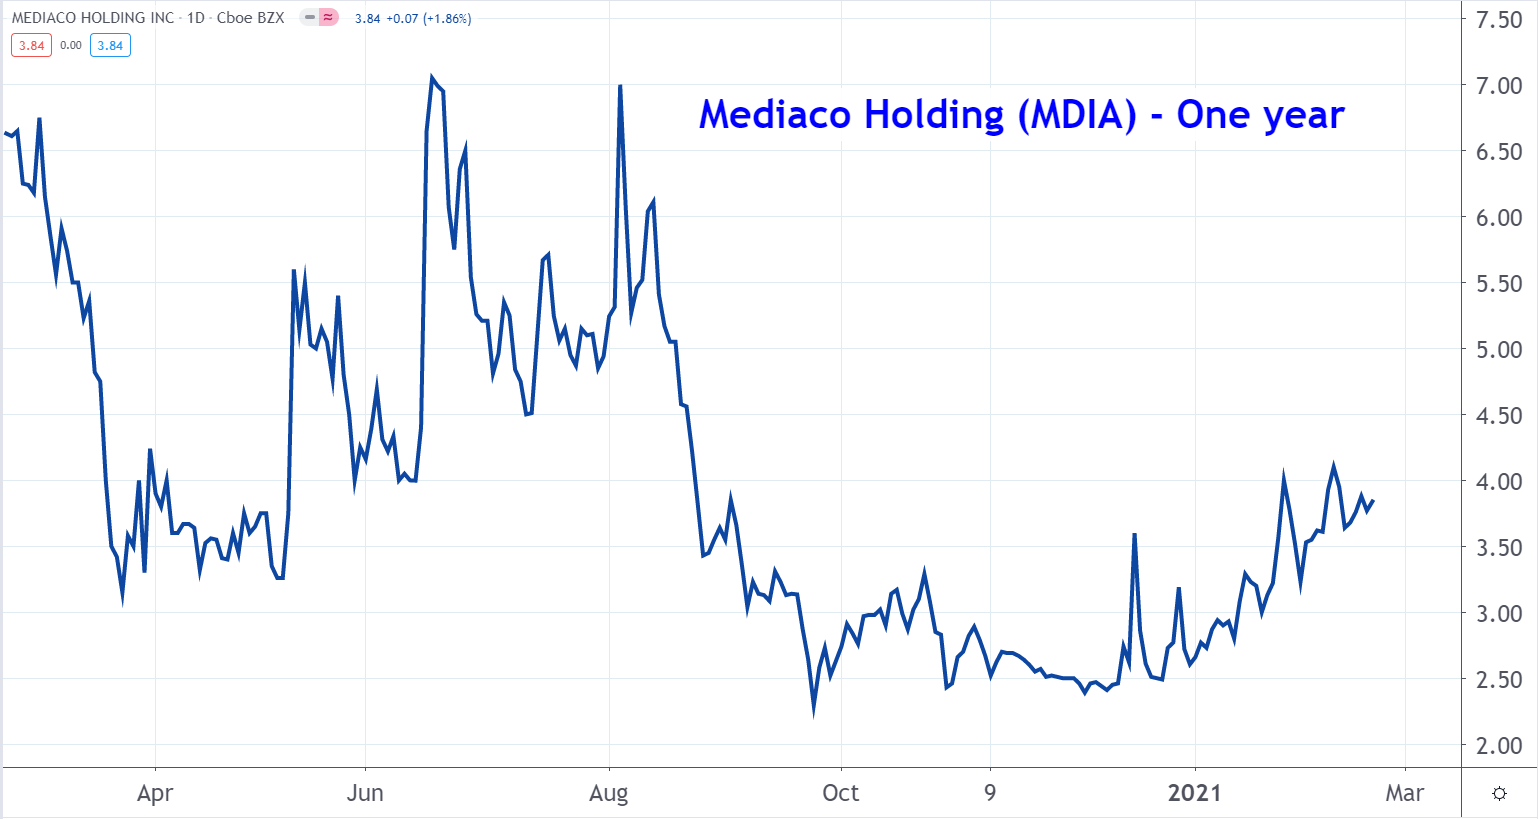 Line graph of Mediaco Holding stock price from March 2020 to March 2021, showing an uptrend after a plummet in October